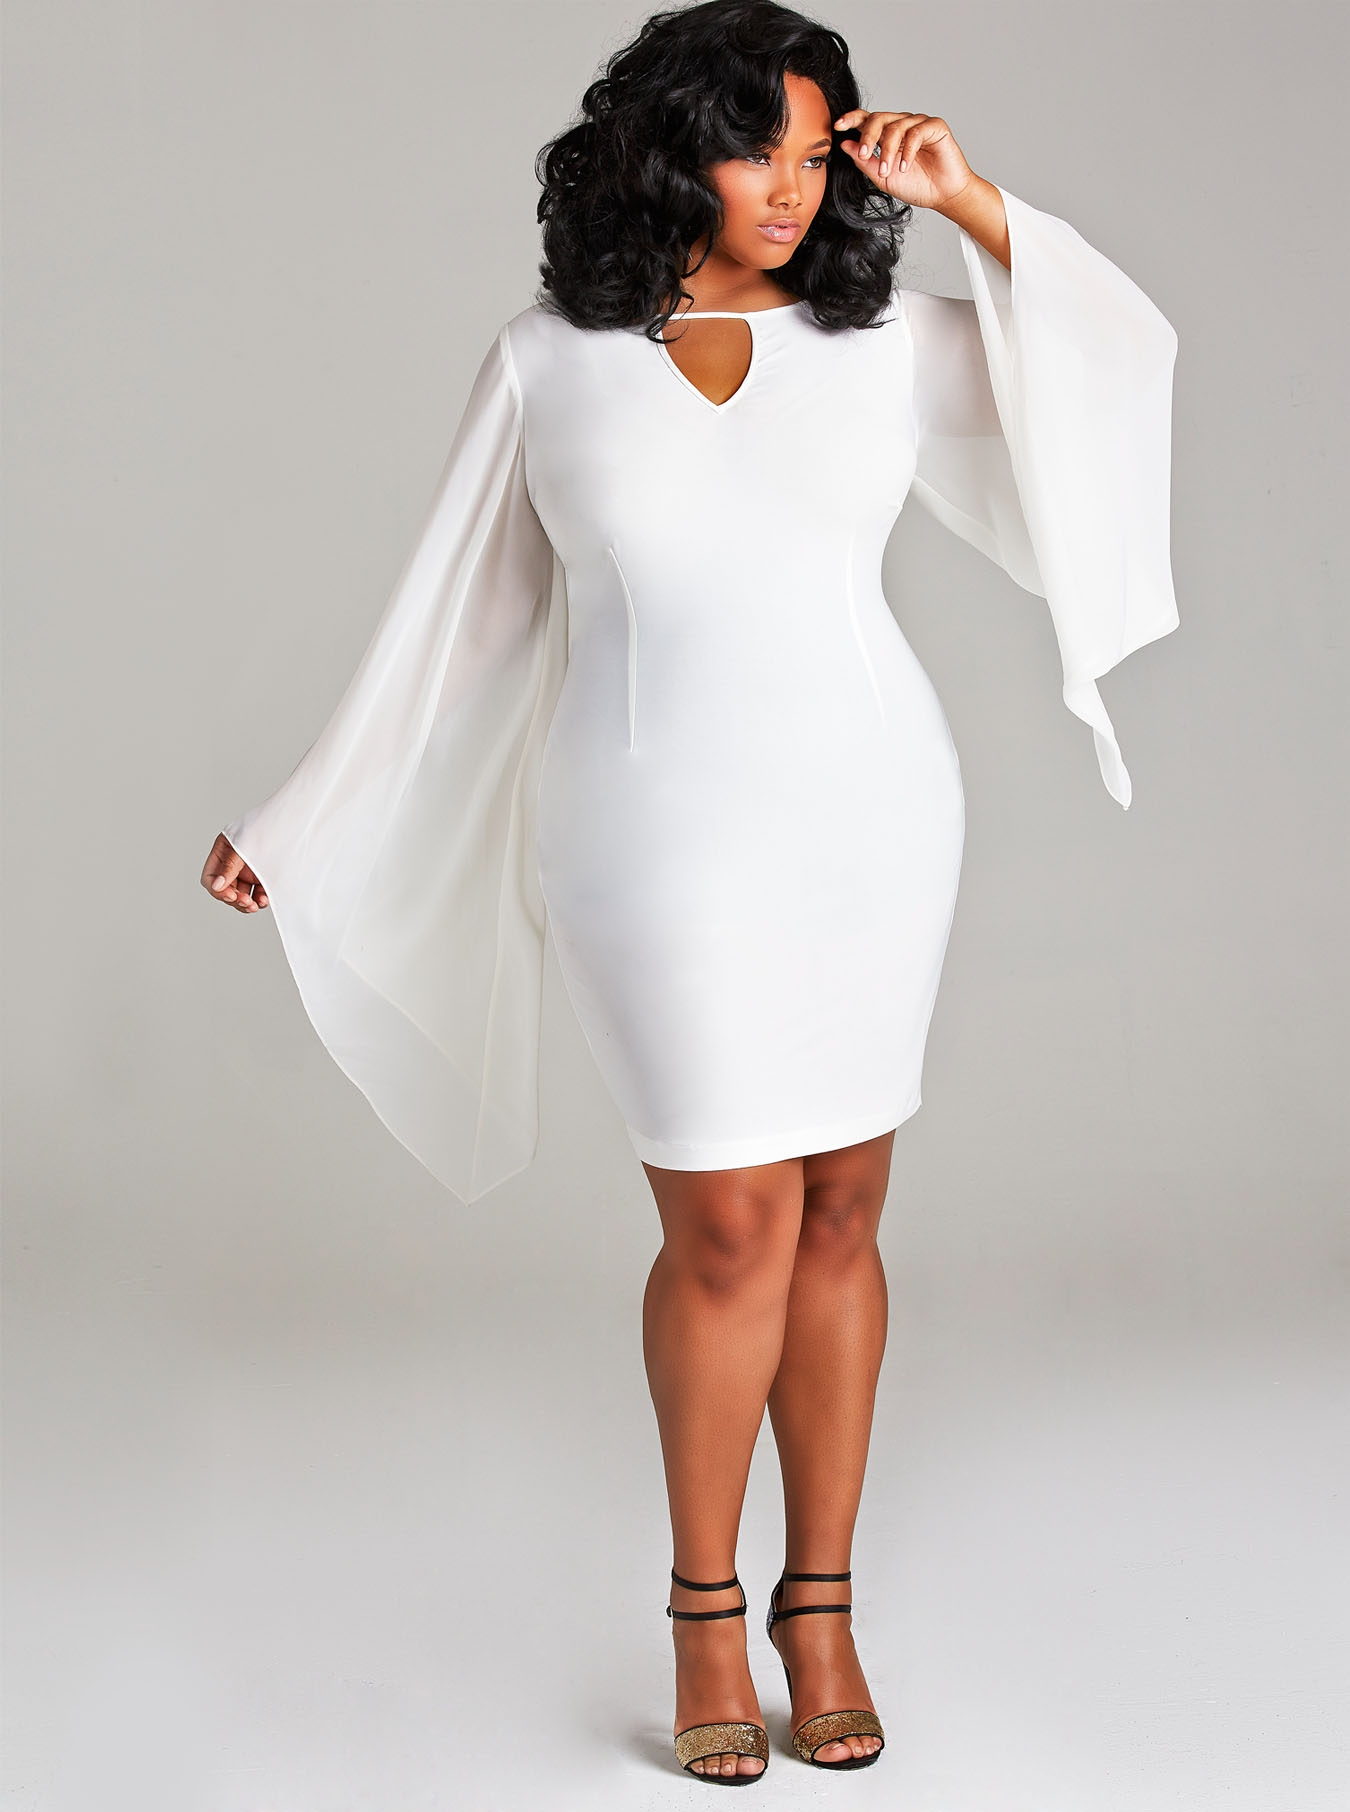 White Formal Plus Size – Fashion dresses